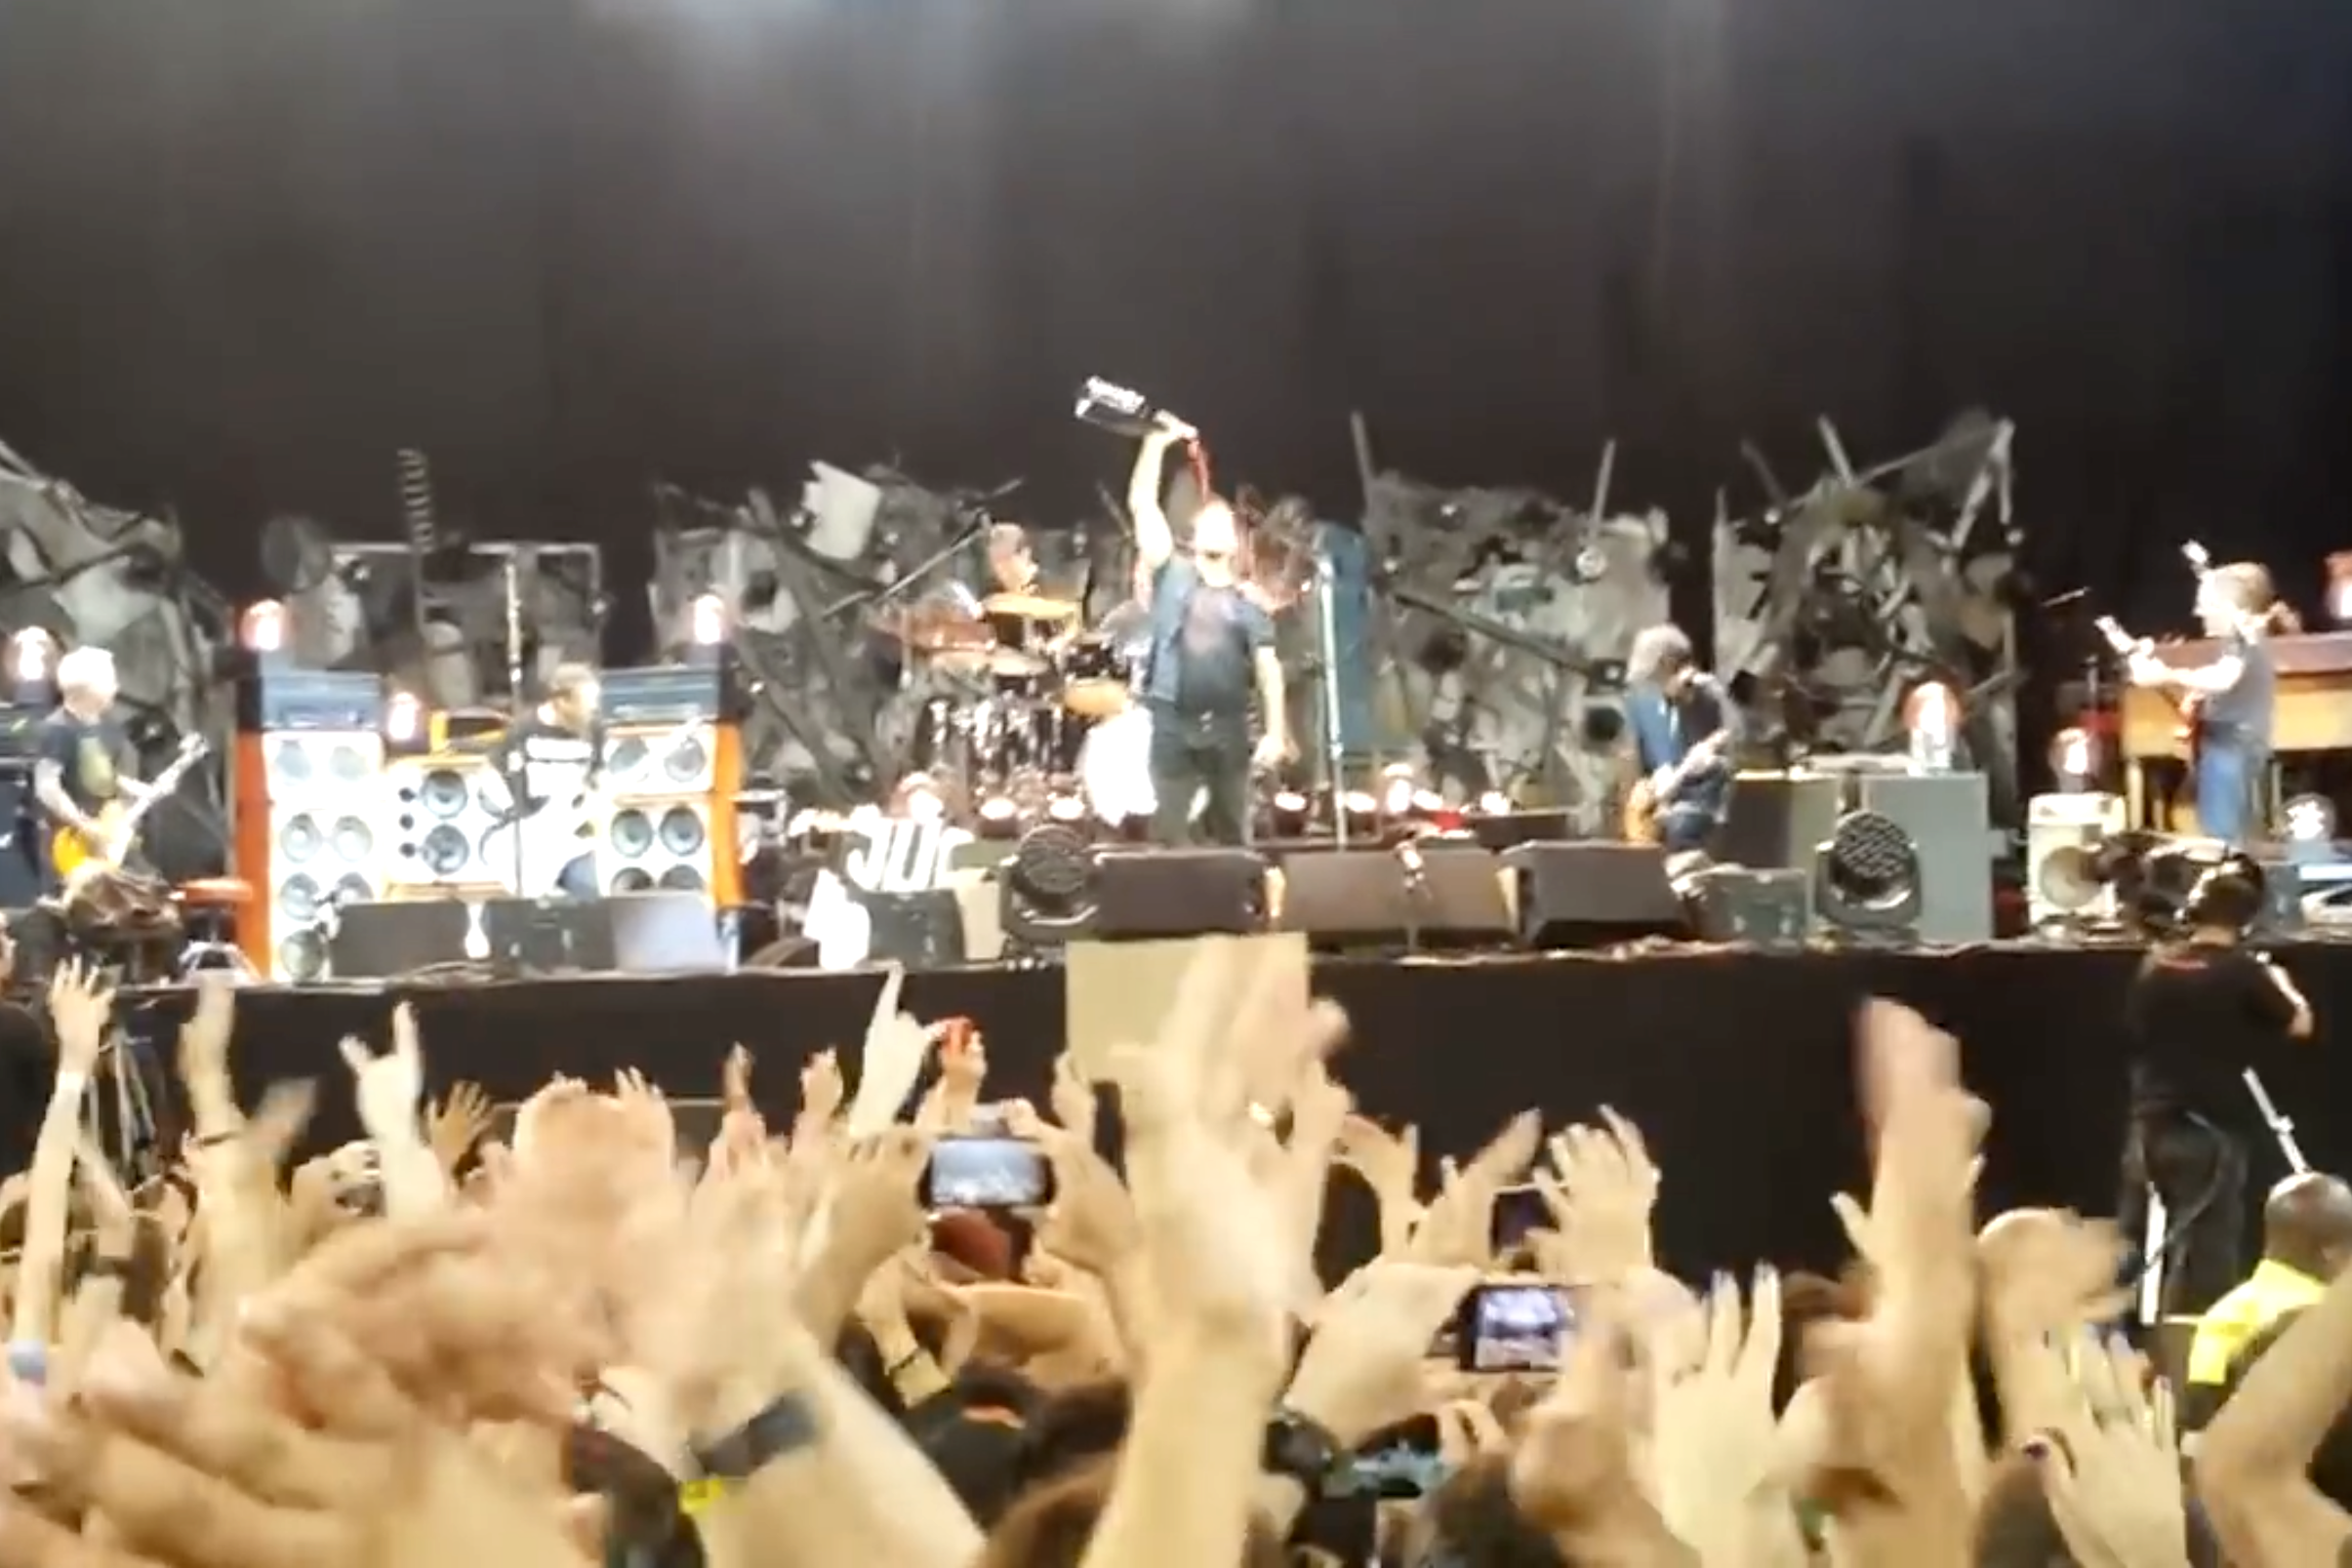 pearl-jam-rockin-in-the-free-world-red-hot-chili-peppers-eddie-vedder-red-wine-video-1521752049